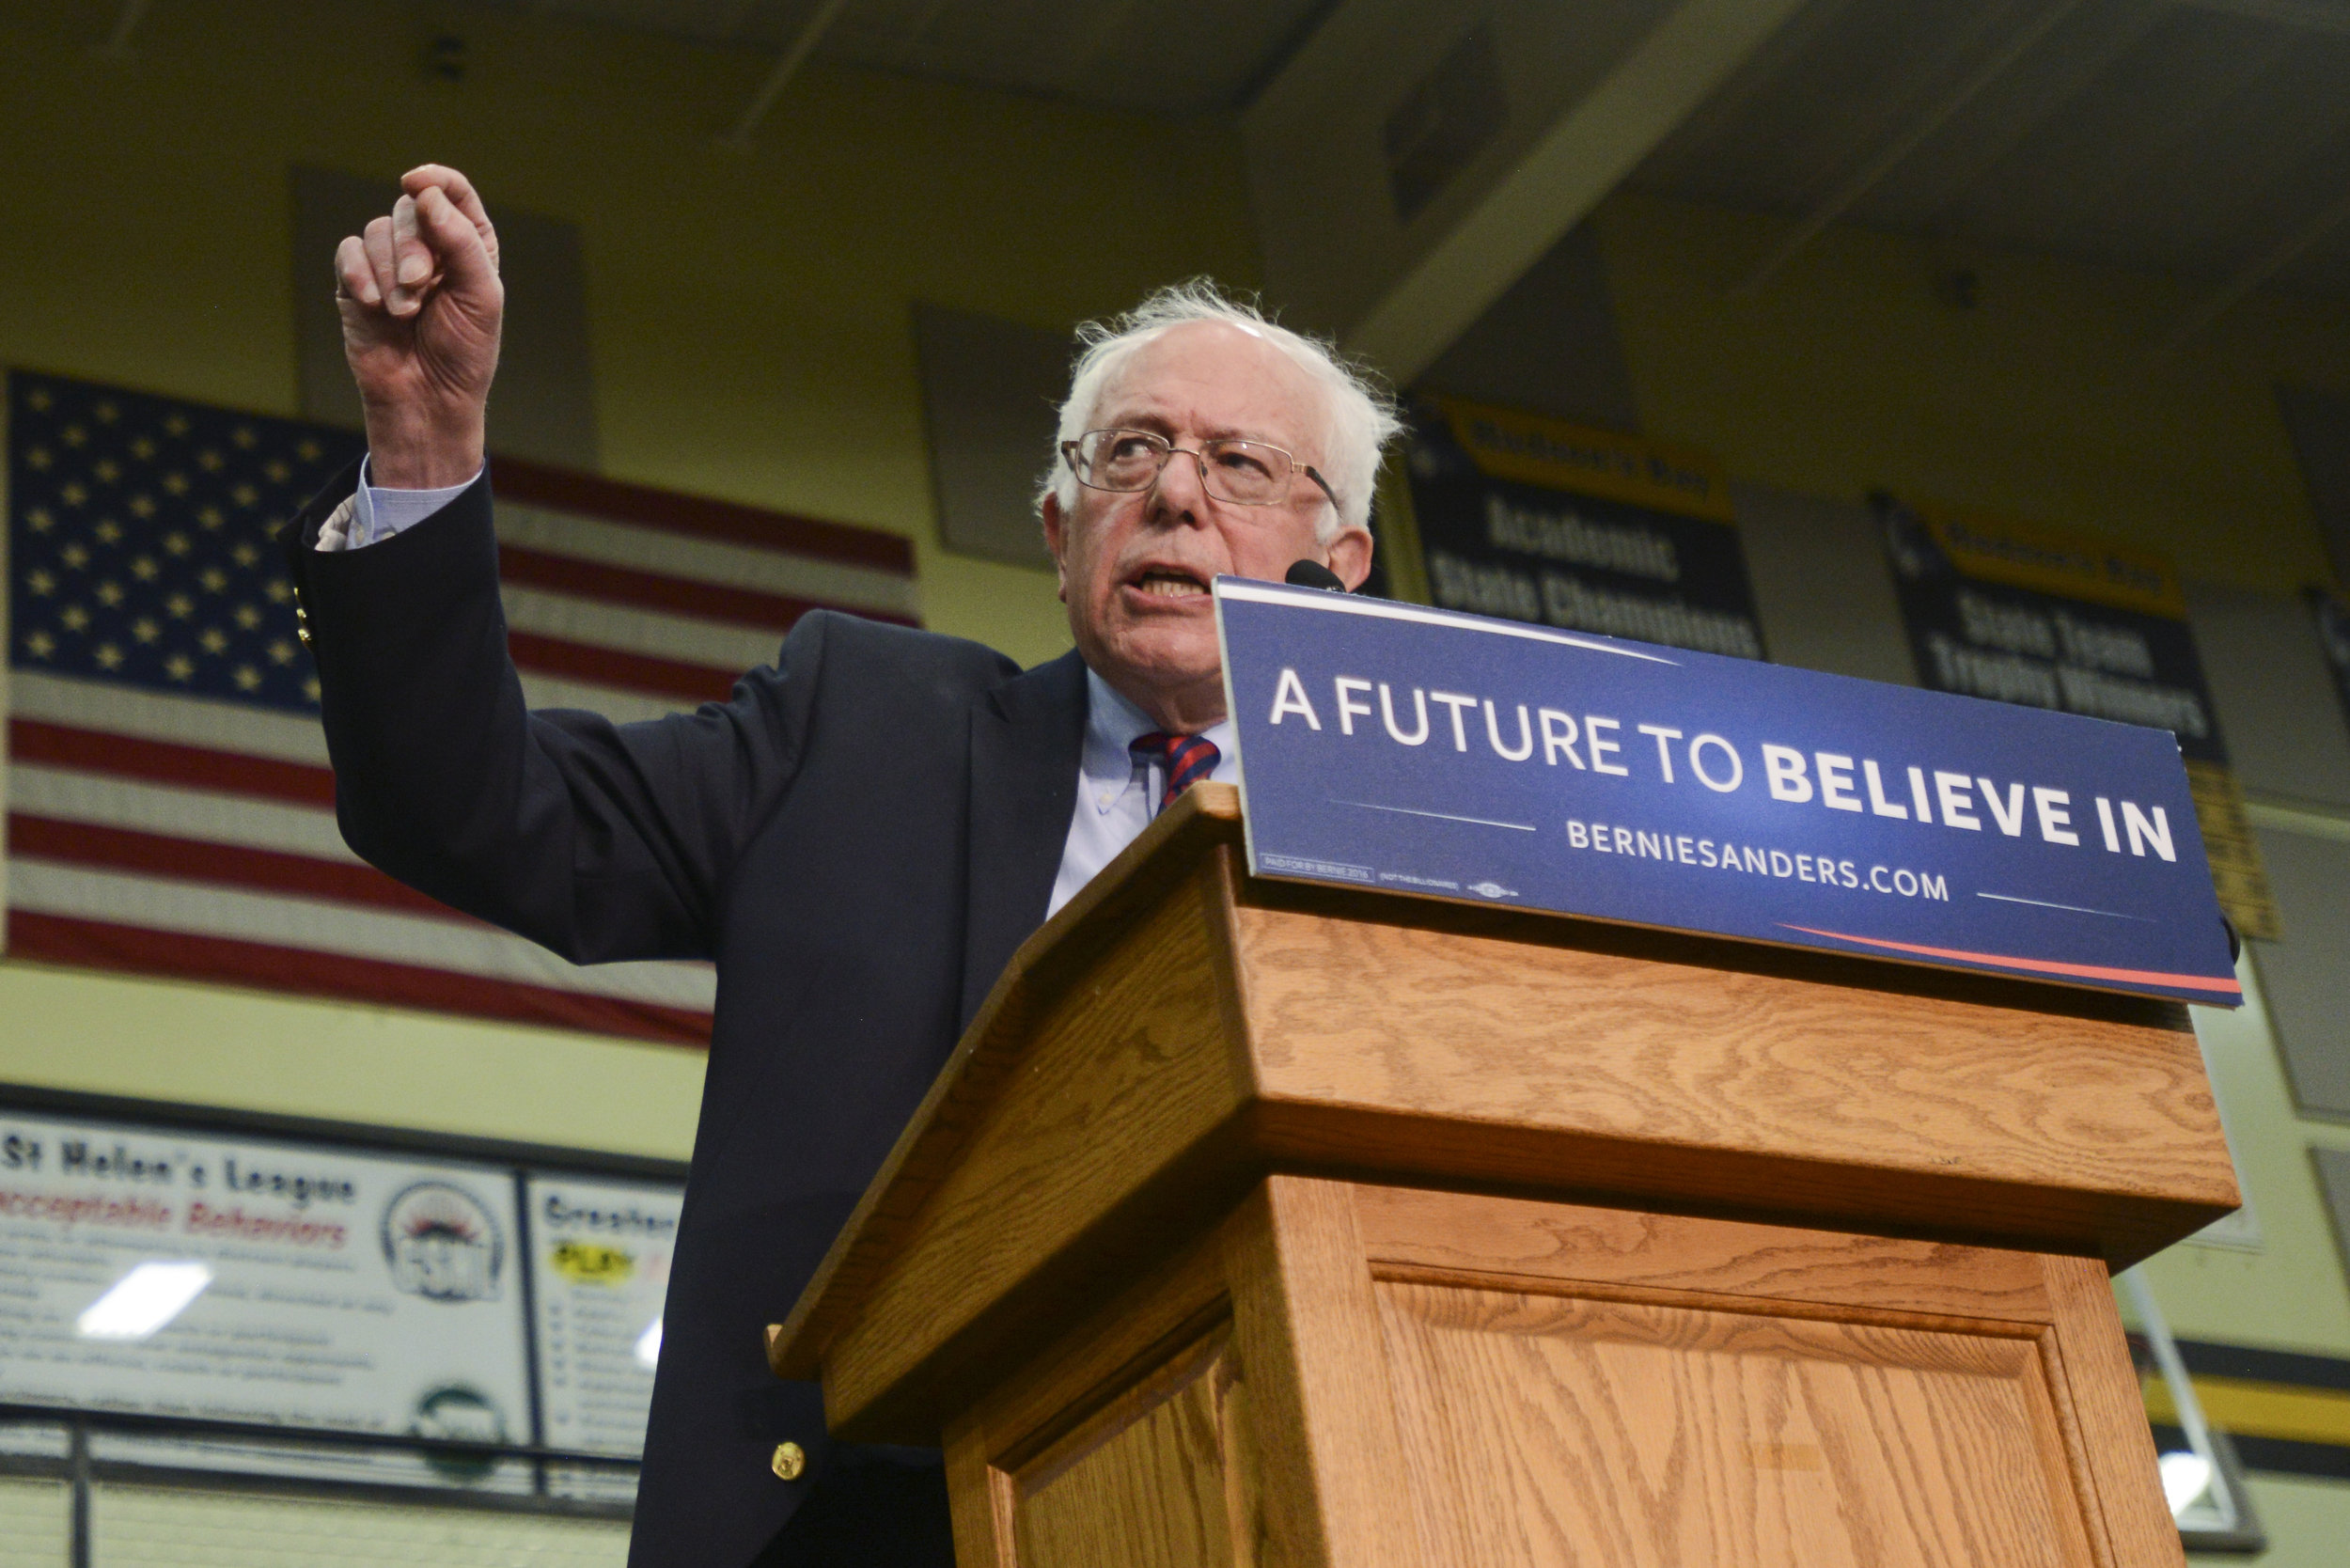 Democratic candidate, Bernie Sanders, spoke in Vancouver March 20, 2016, to nearly 5,000 people at Hudson's Bay High School. (Ariane Kunze/The Columbian)